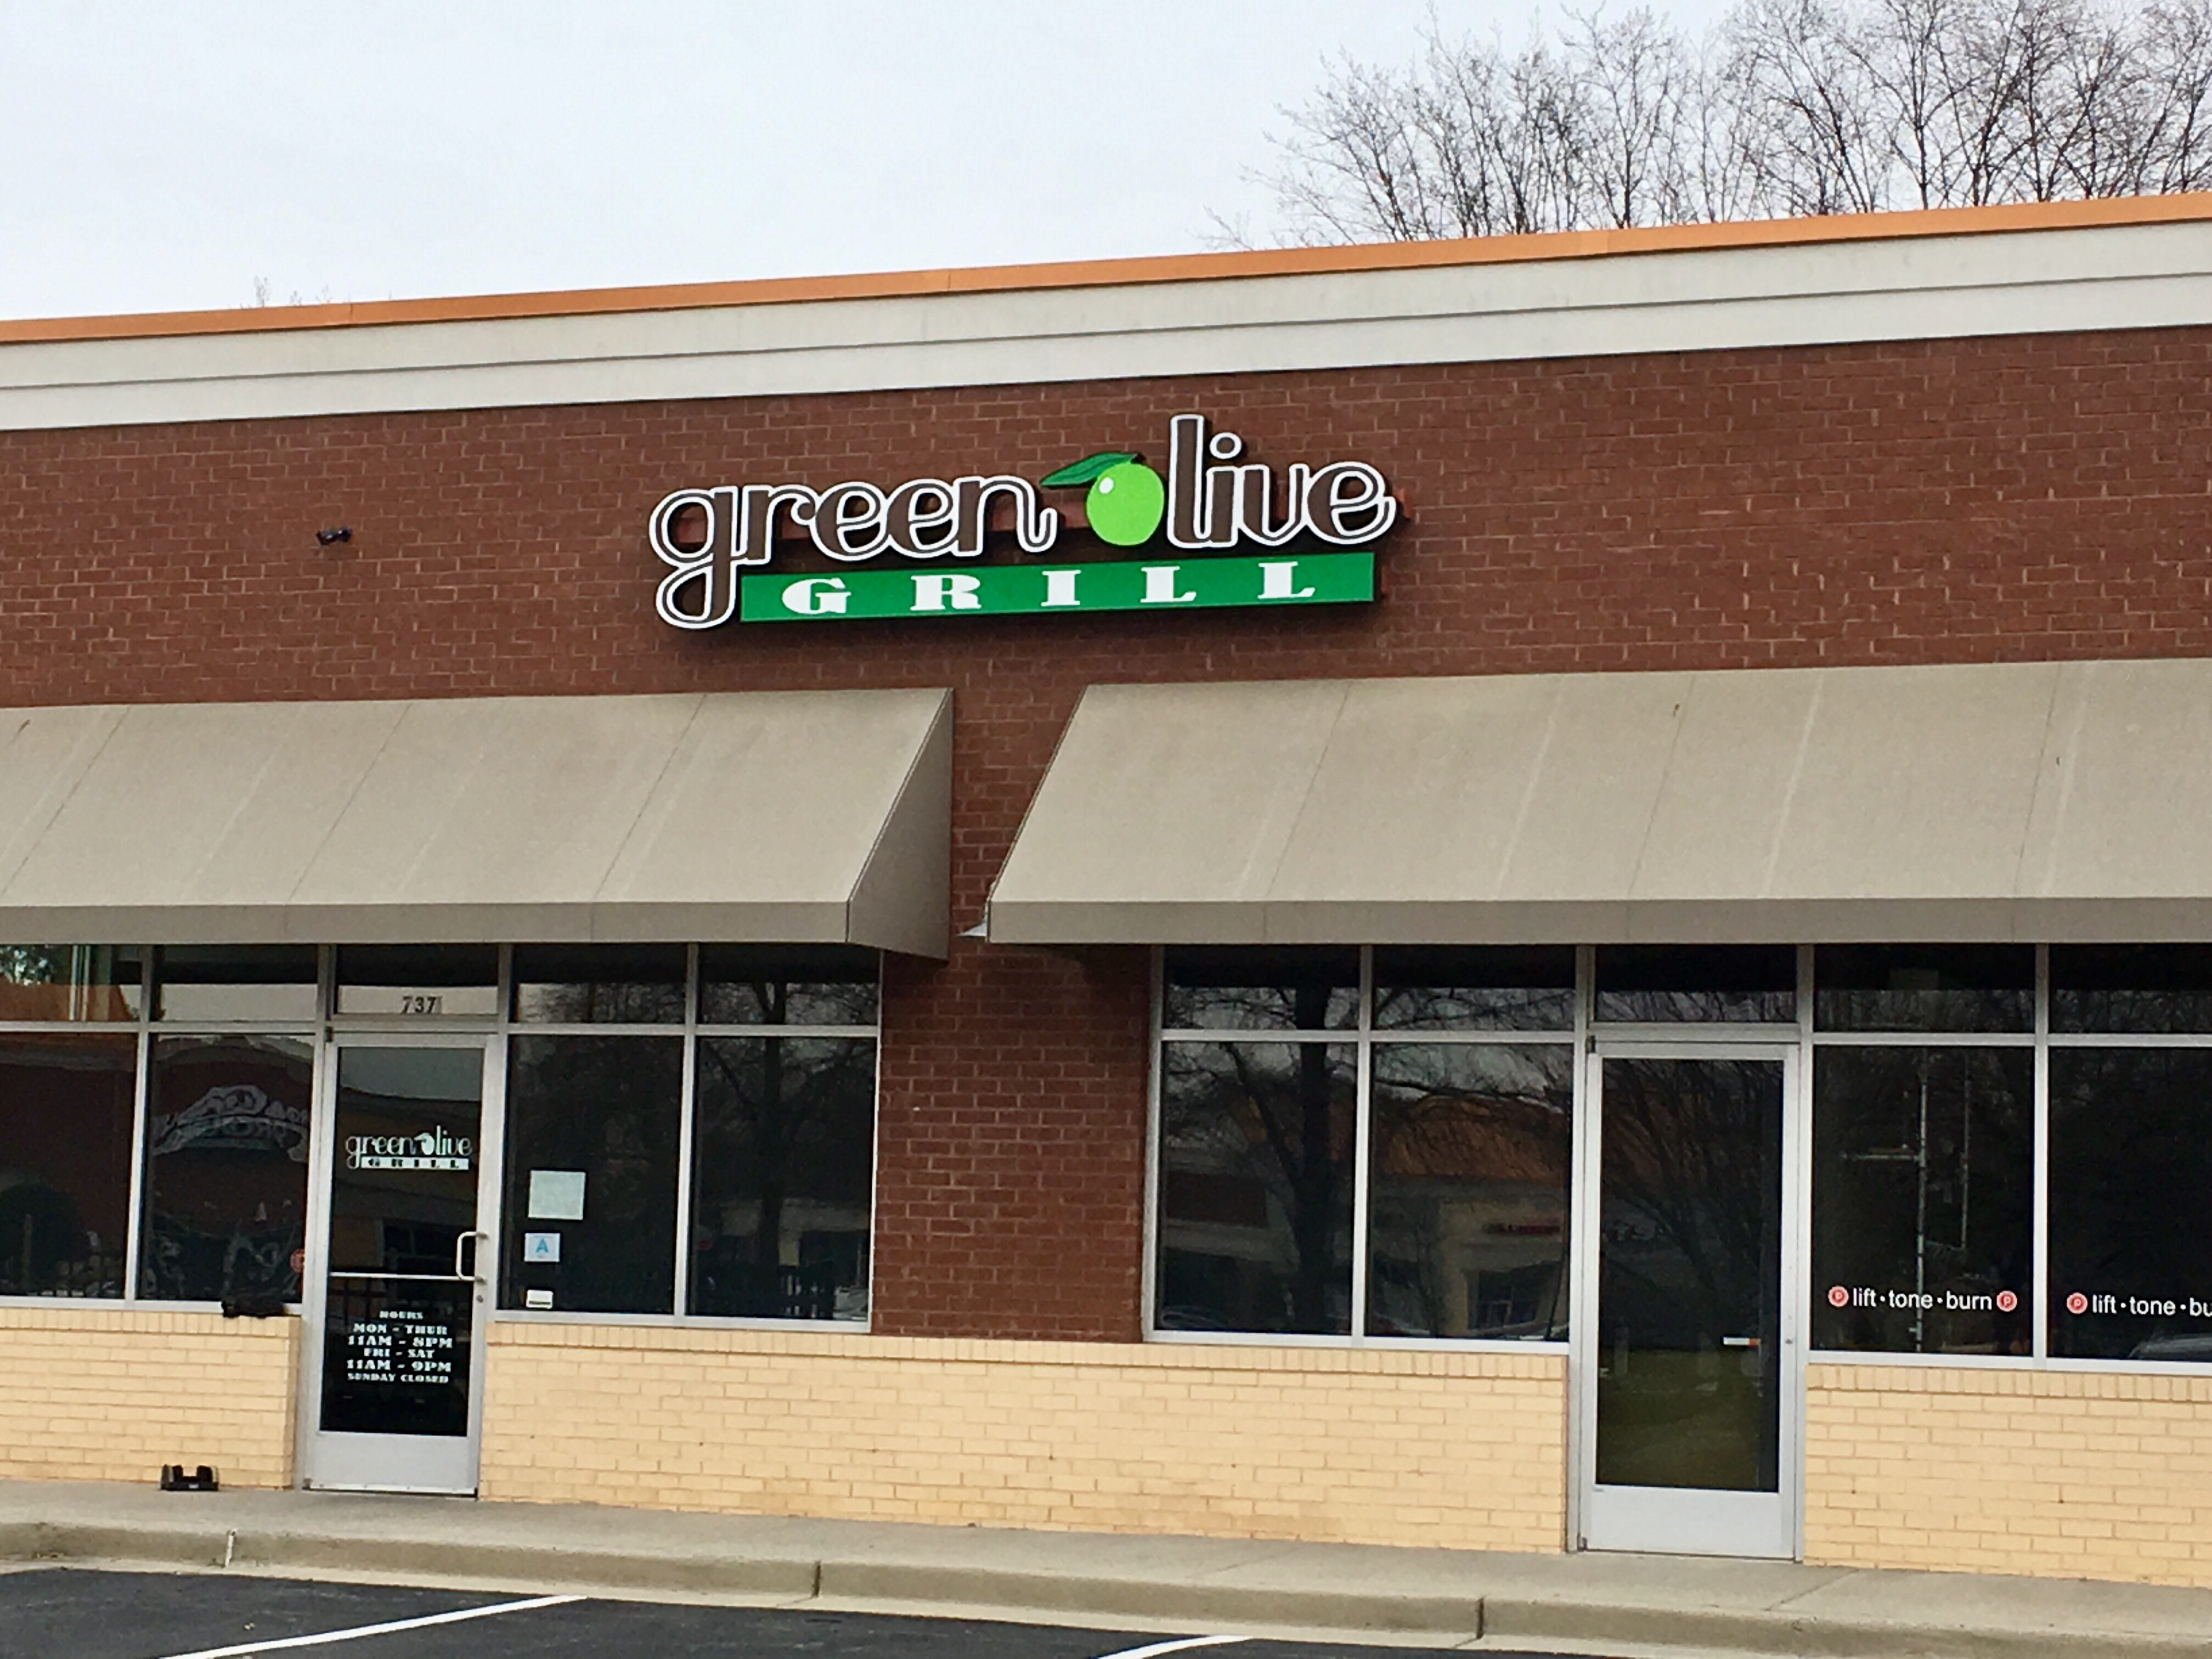 The exterior of Green Olive Grill, anew restaurant at the corner of SC 160 and Gold Hill road in Fort Mill.